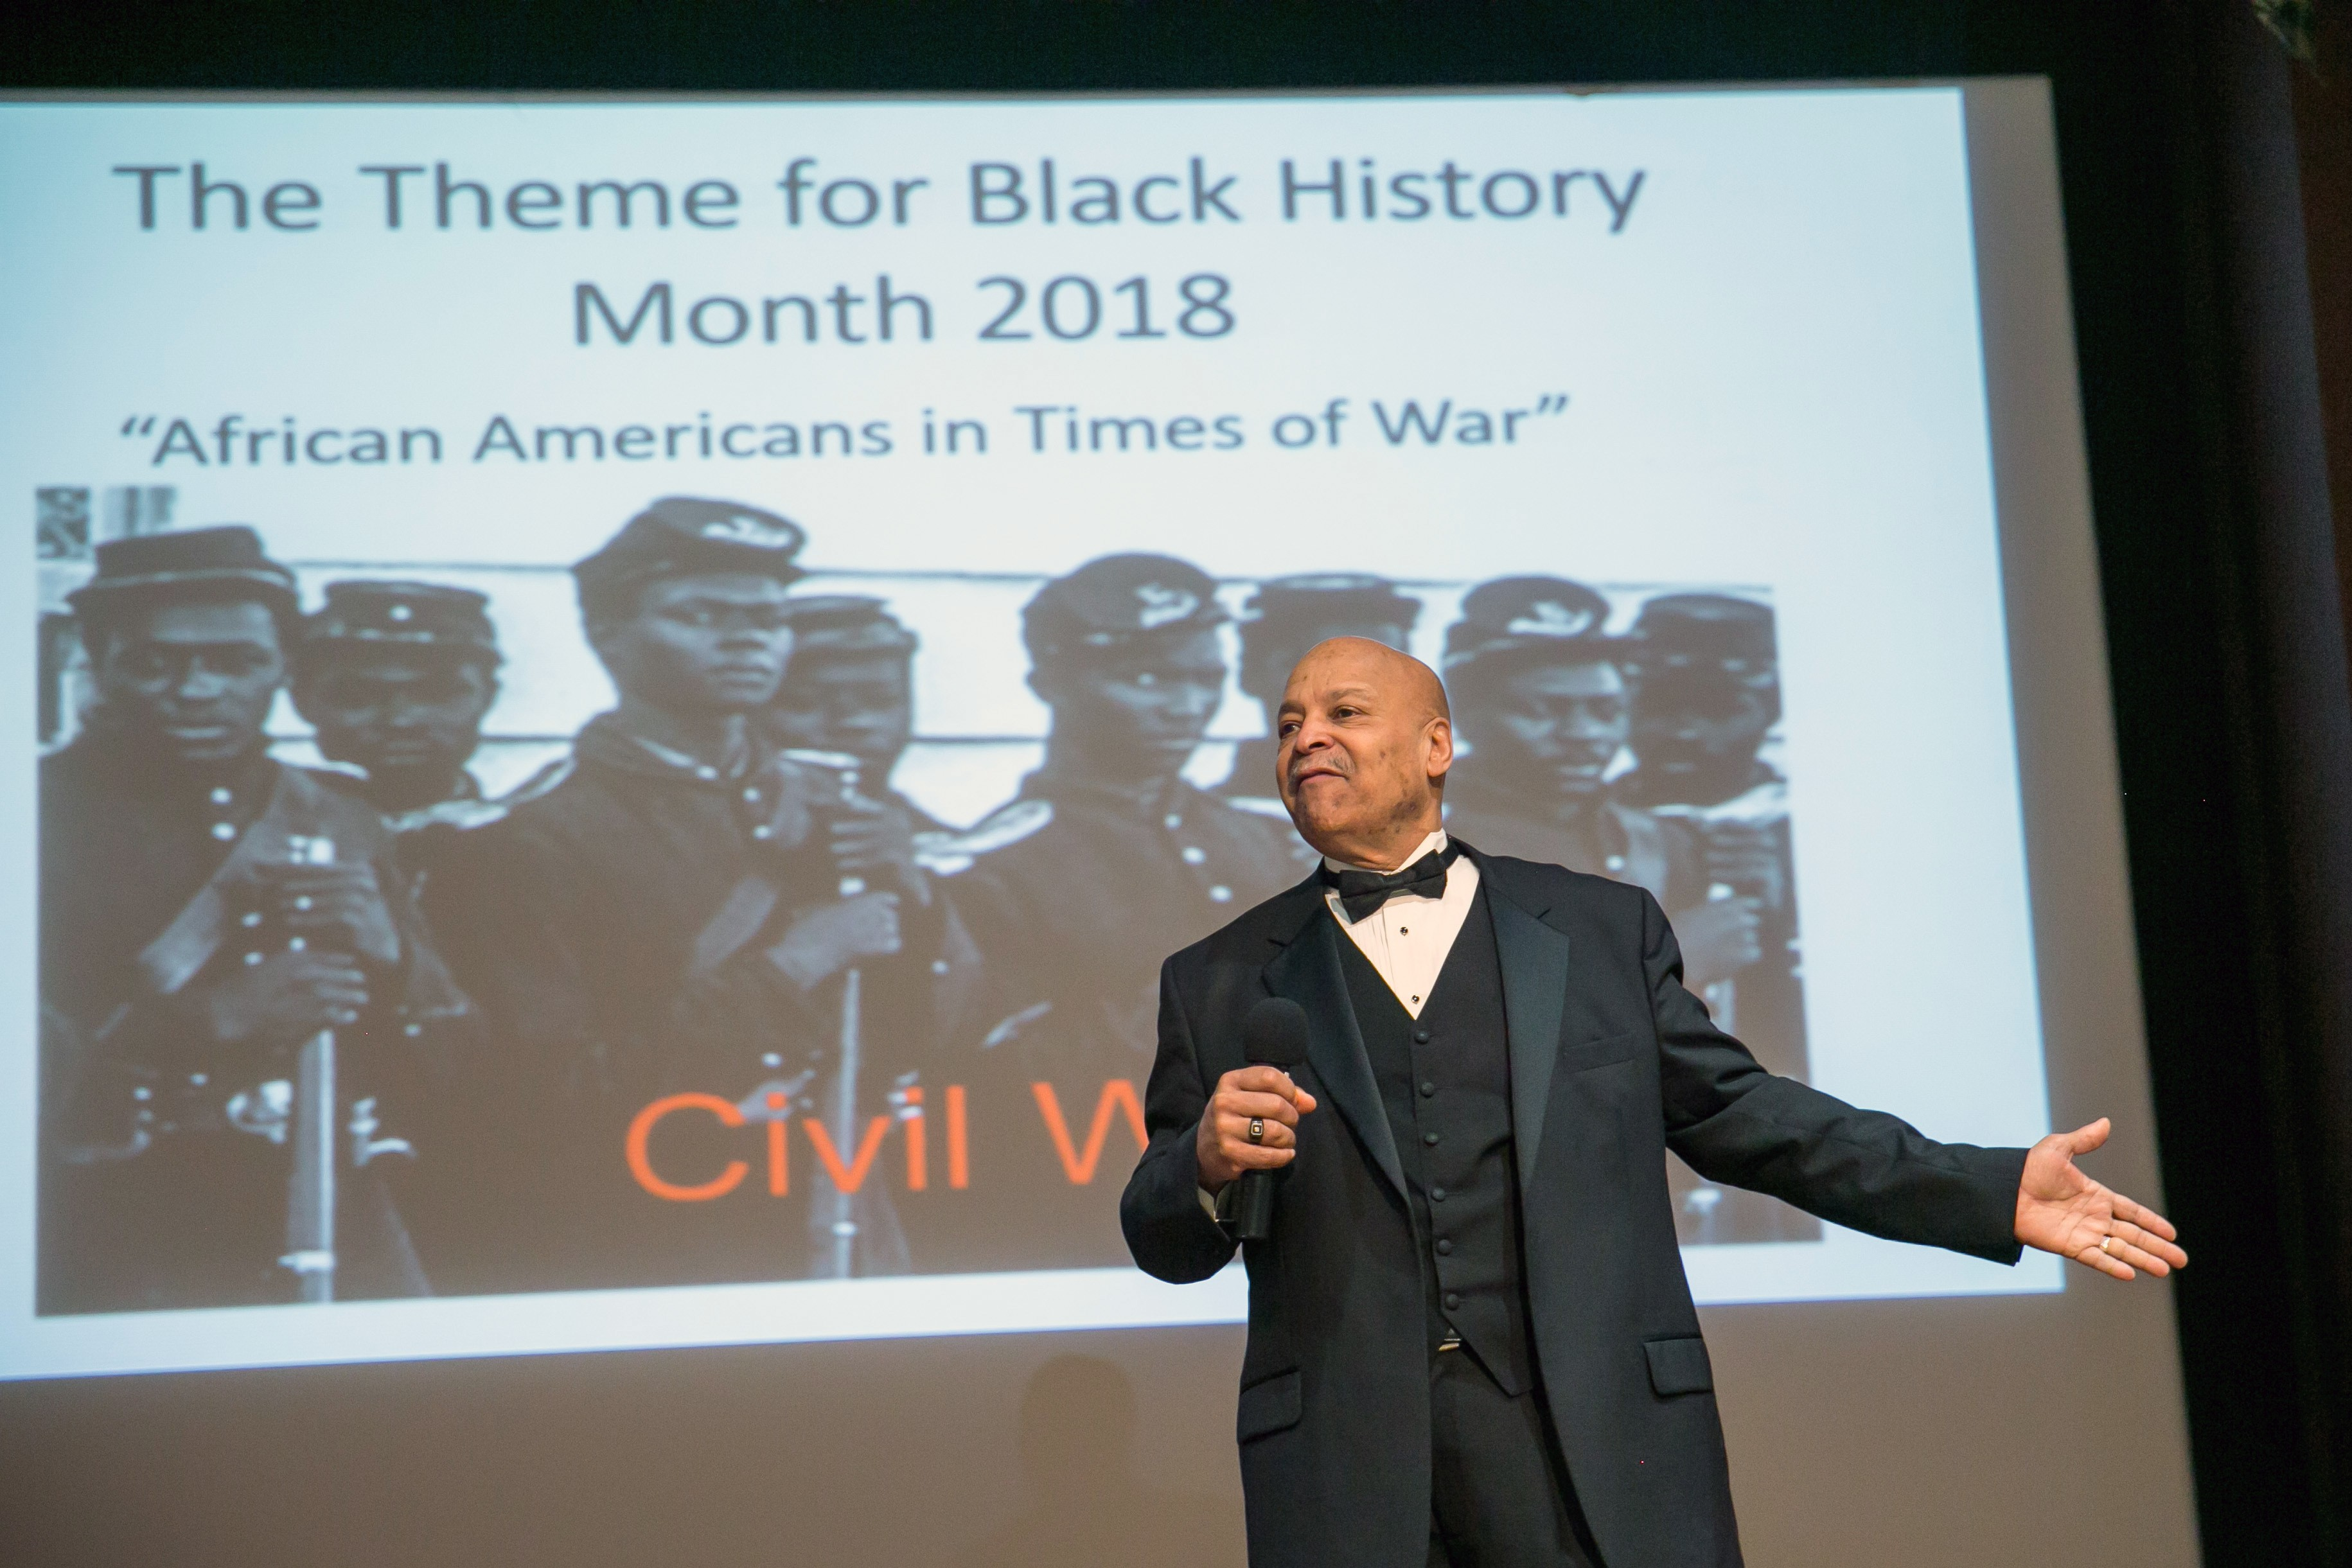 black history month essay contests Eastman's black history month oratorical contest provides local high school   students with an opportunity to improve their writing, communication, public.